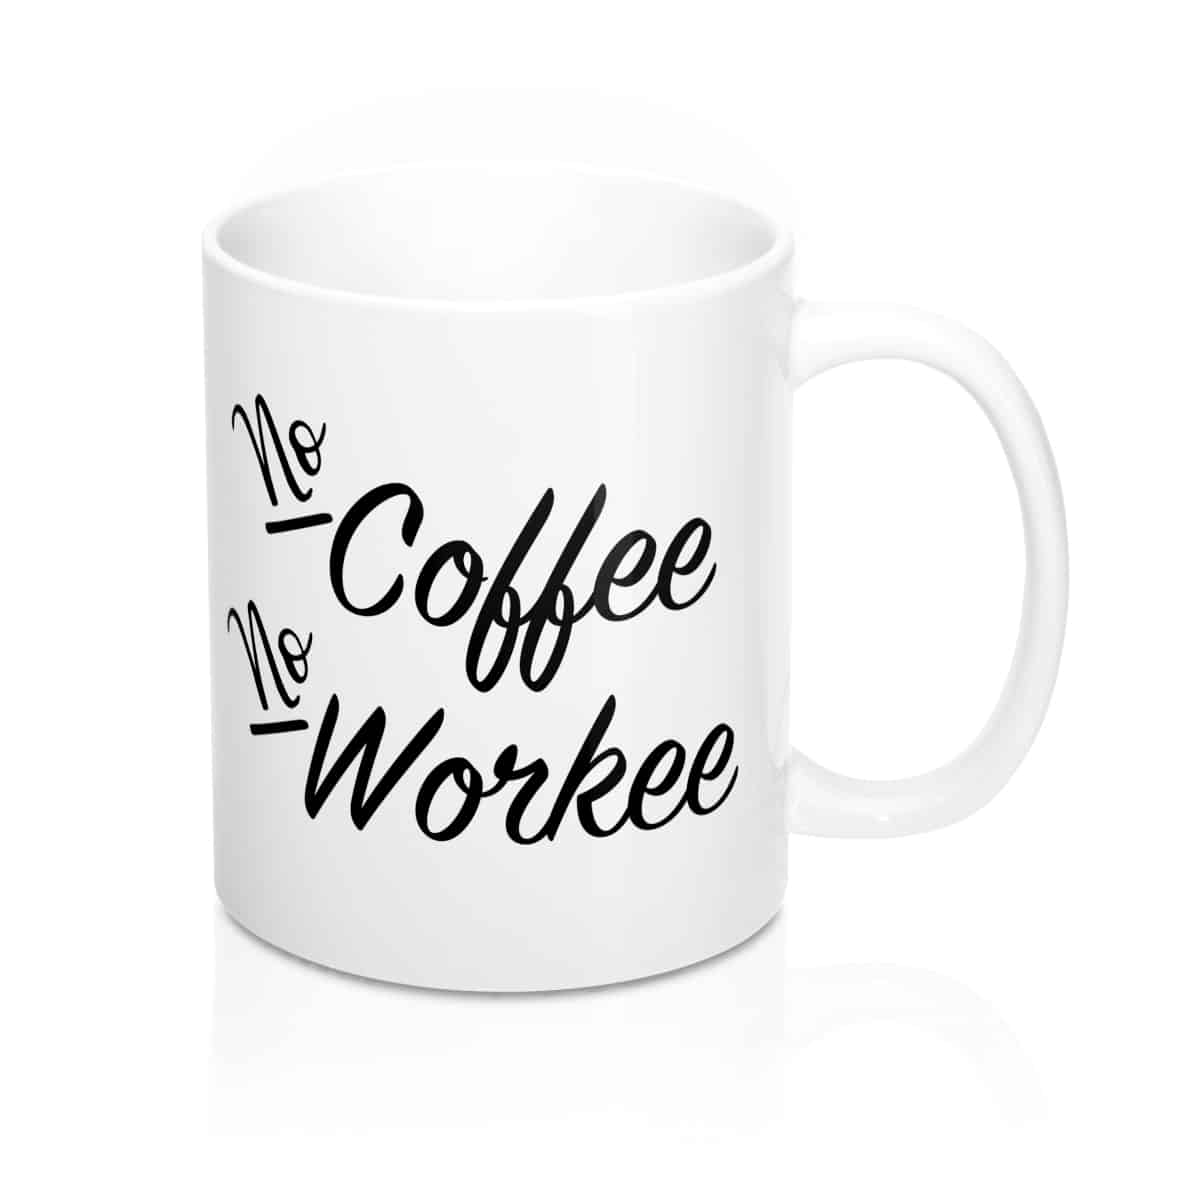 Odd Shaped Coffee Mugs No Coffee No Workee Funny Quote Mug For Entrepreneurs